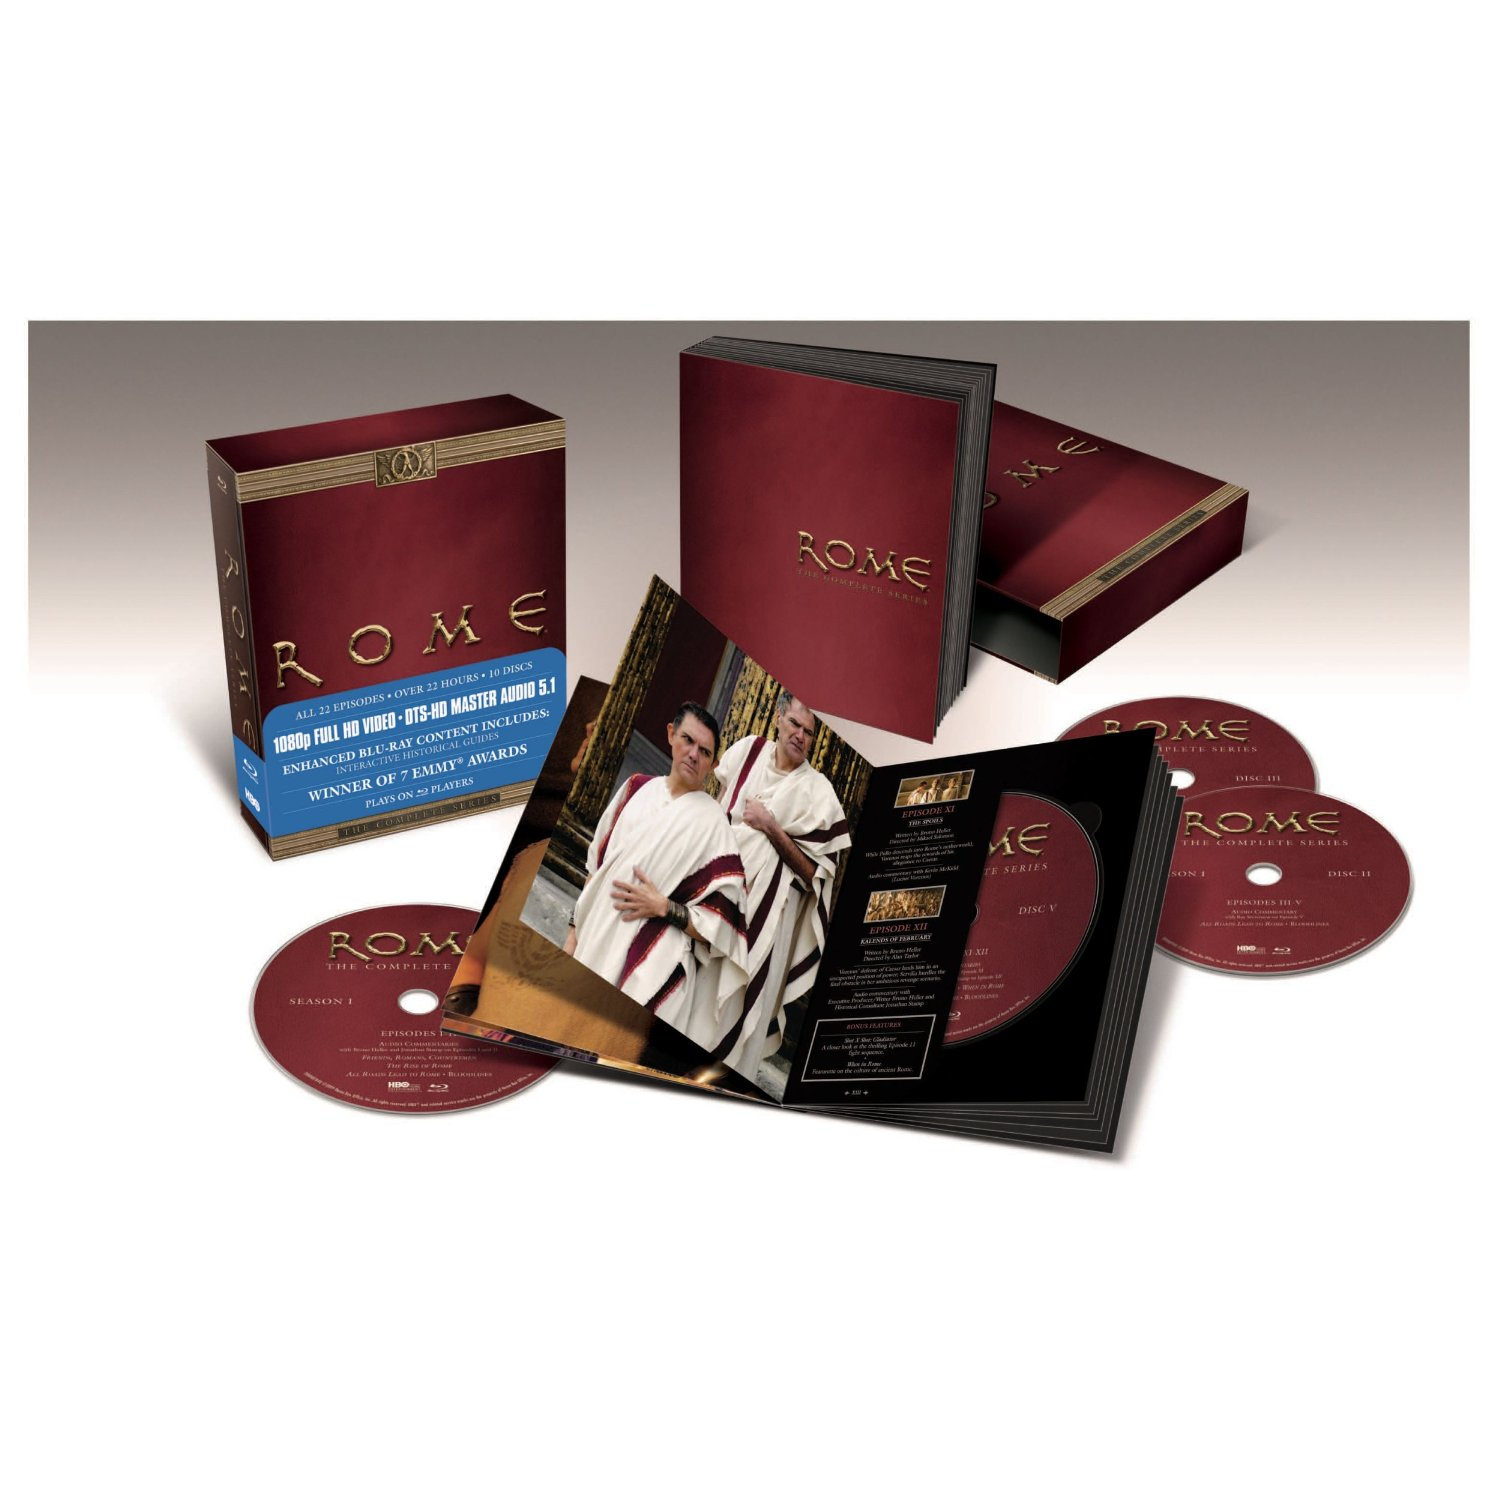 Amazon Canada Rome The Complete Series $74.99 Today Only ...